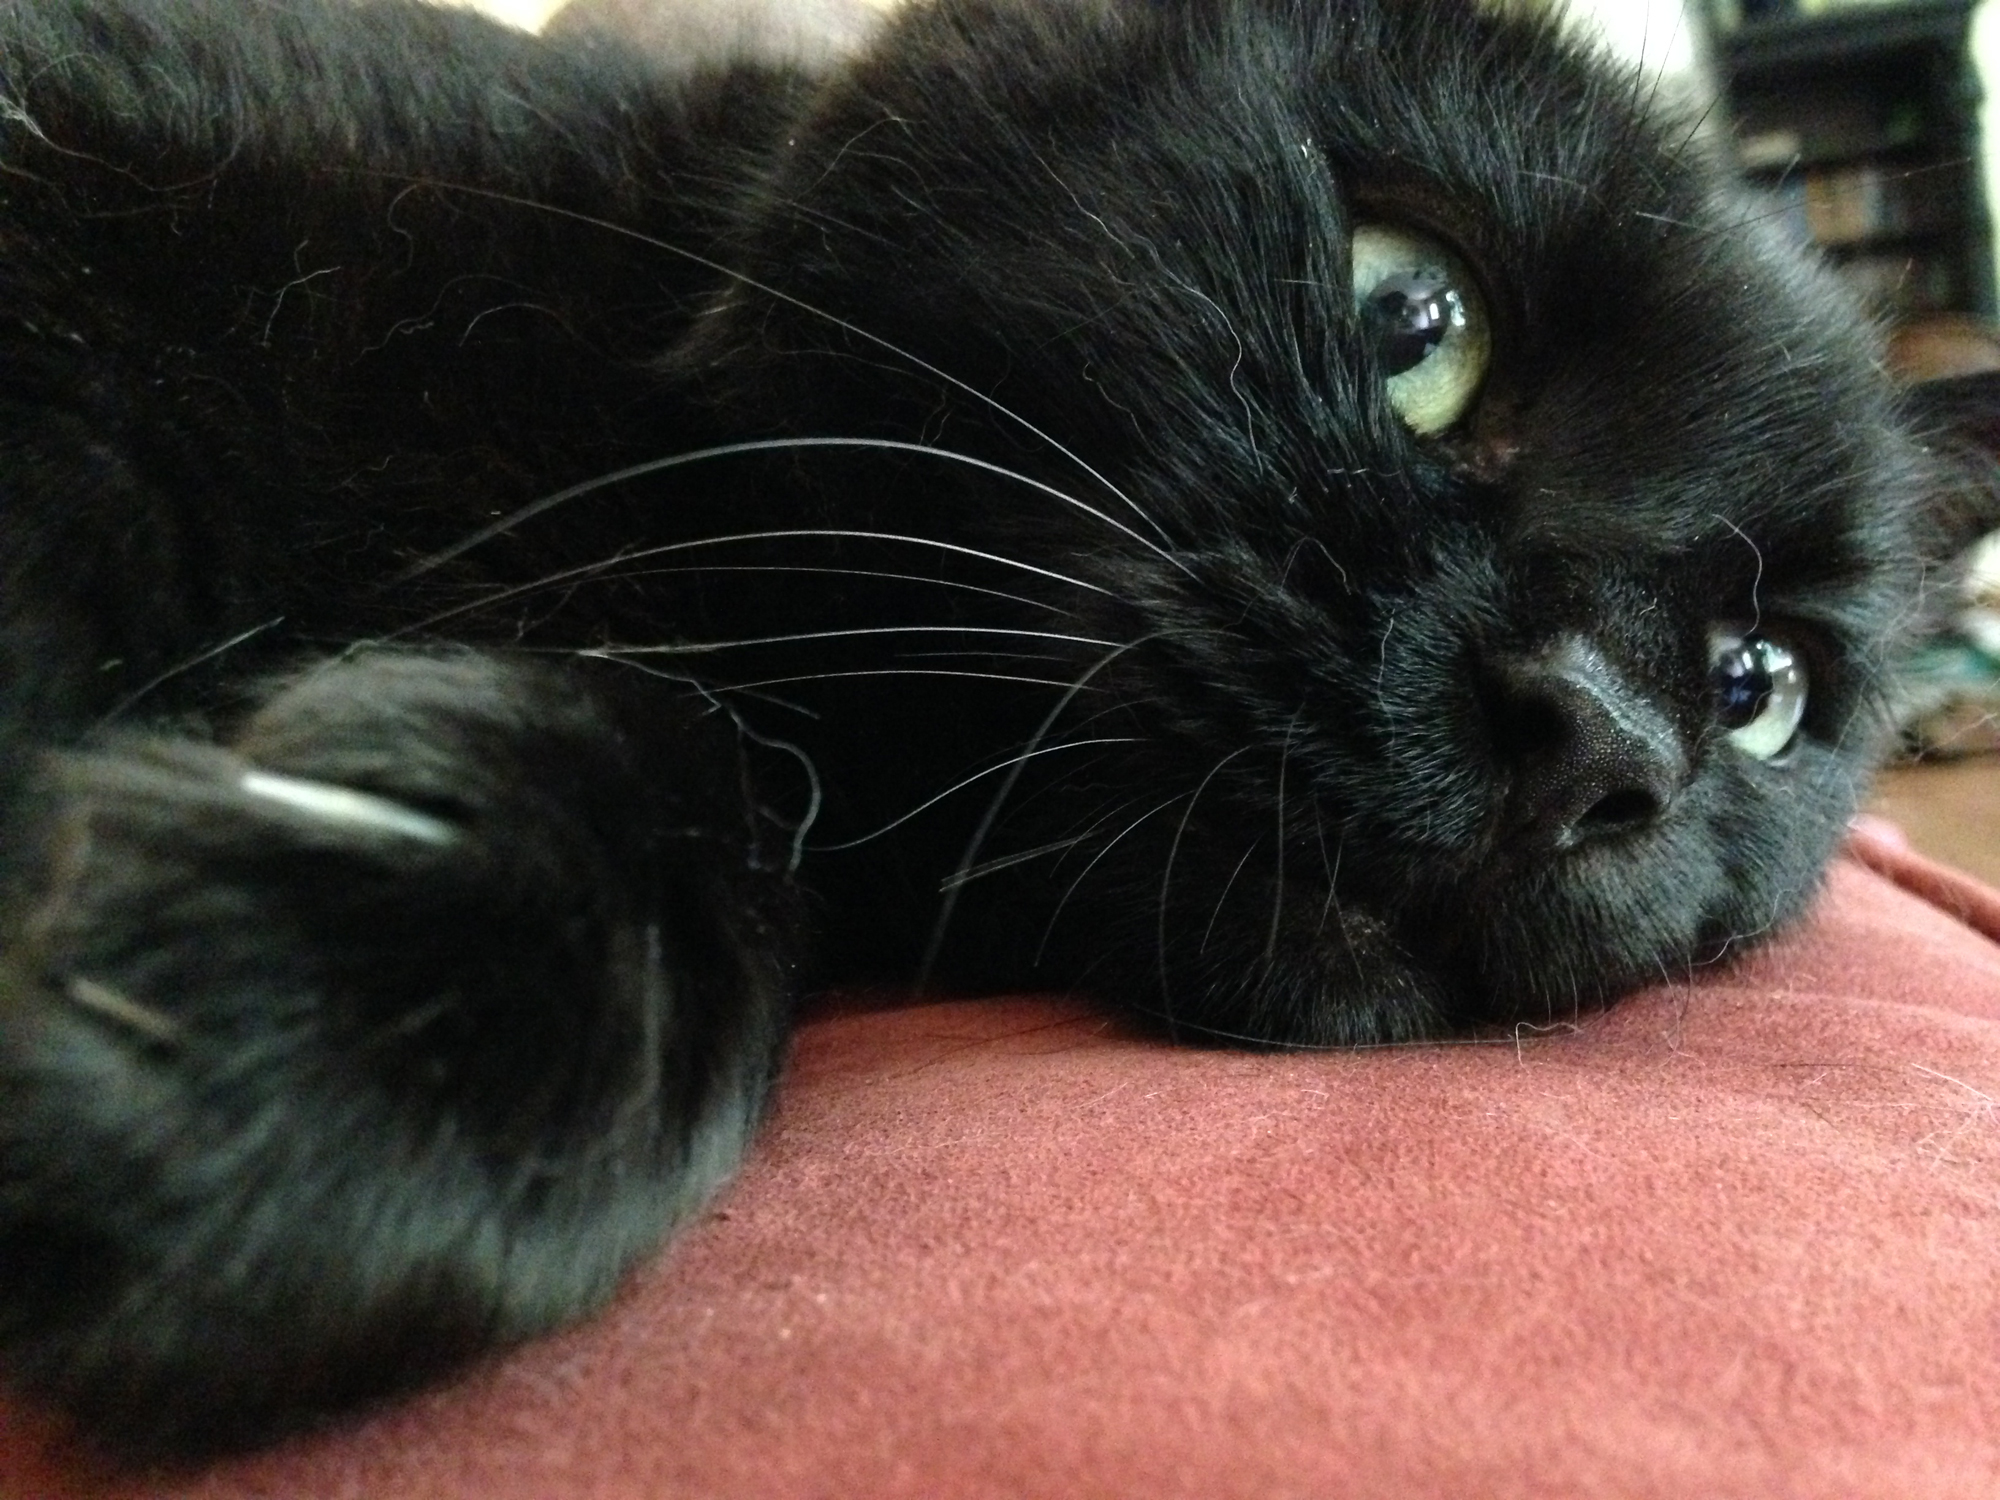 Animal shelters buck black cat superstitions, encourage adoptions